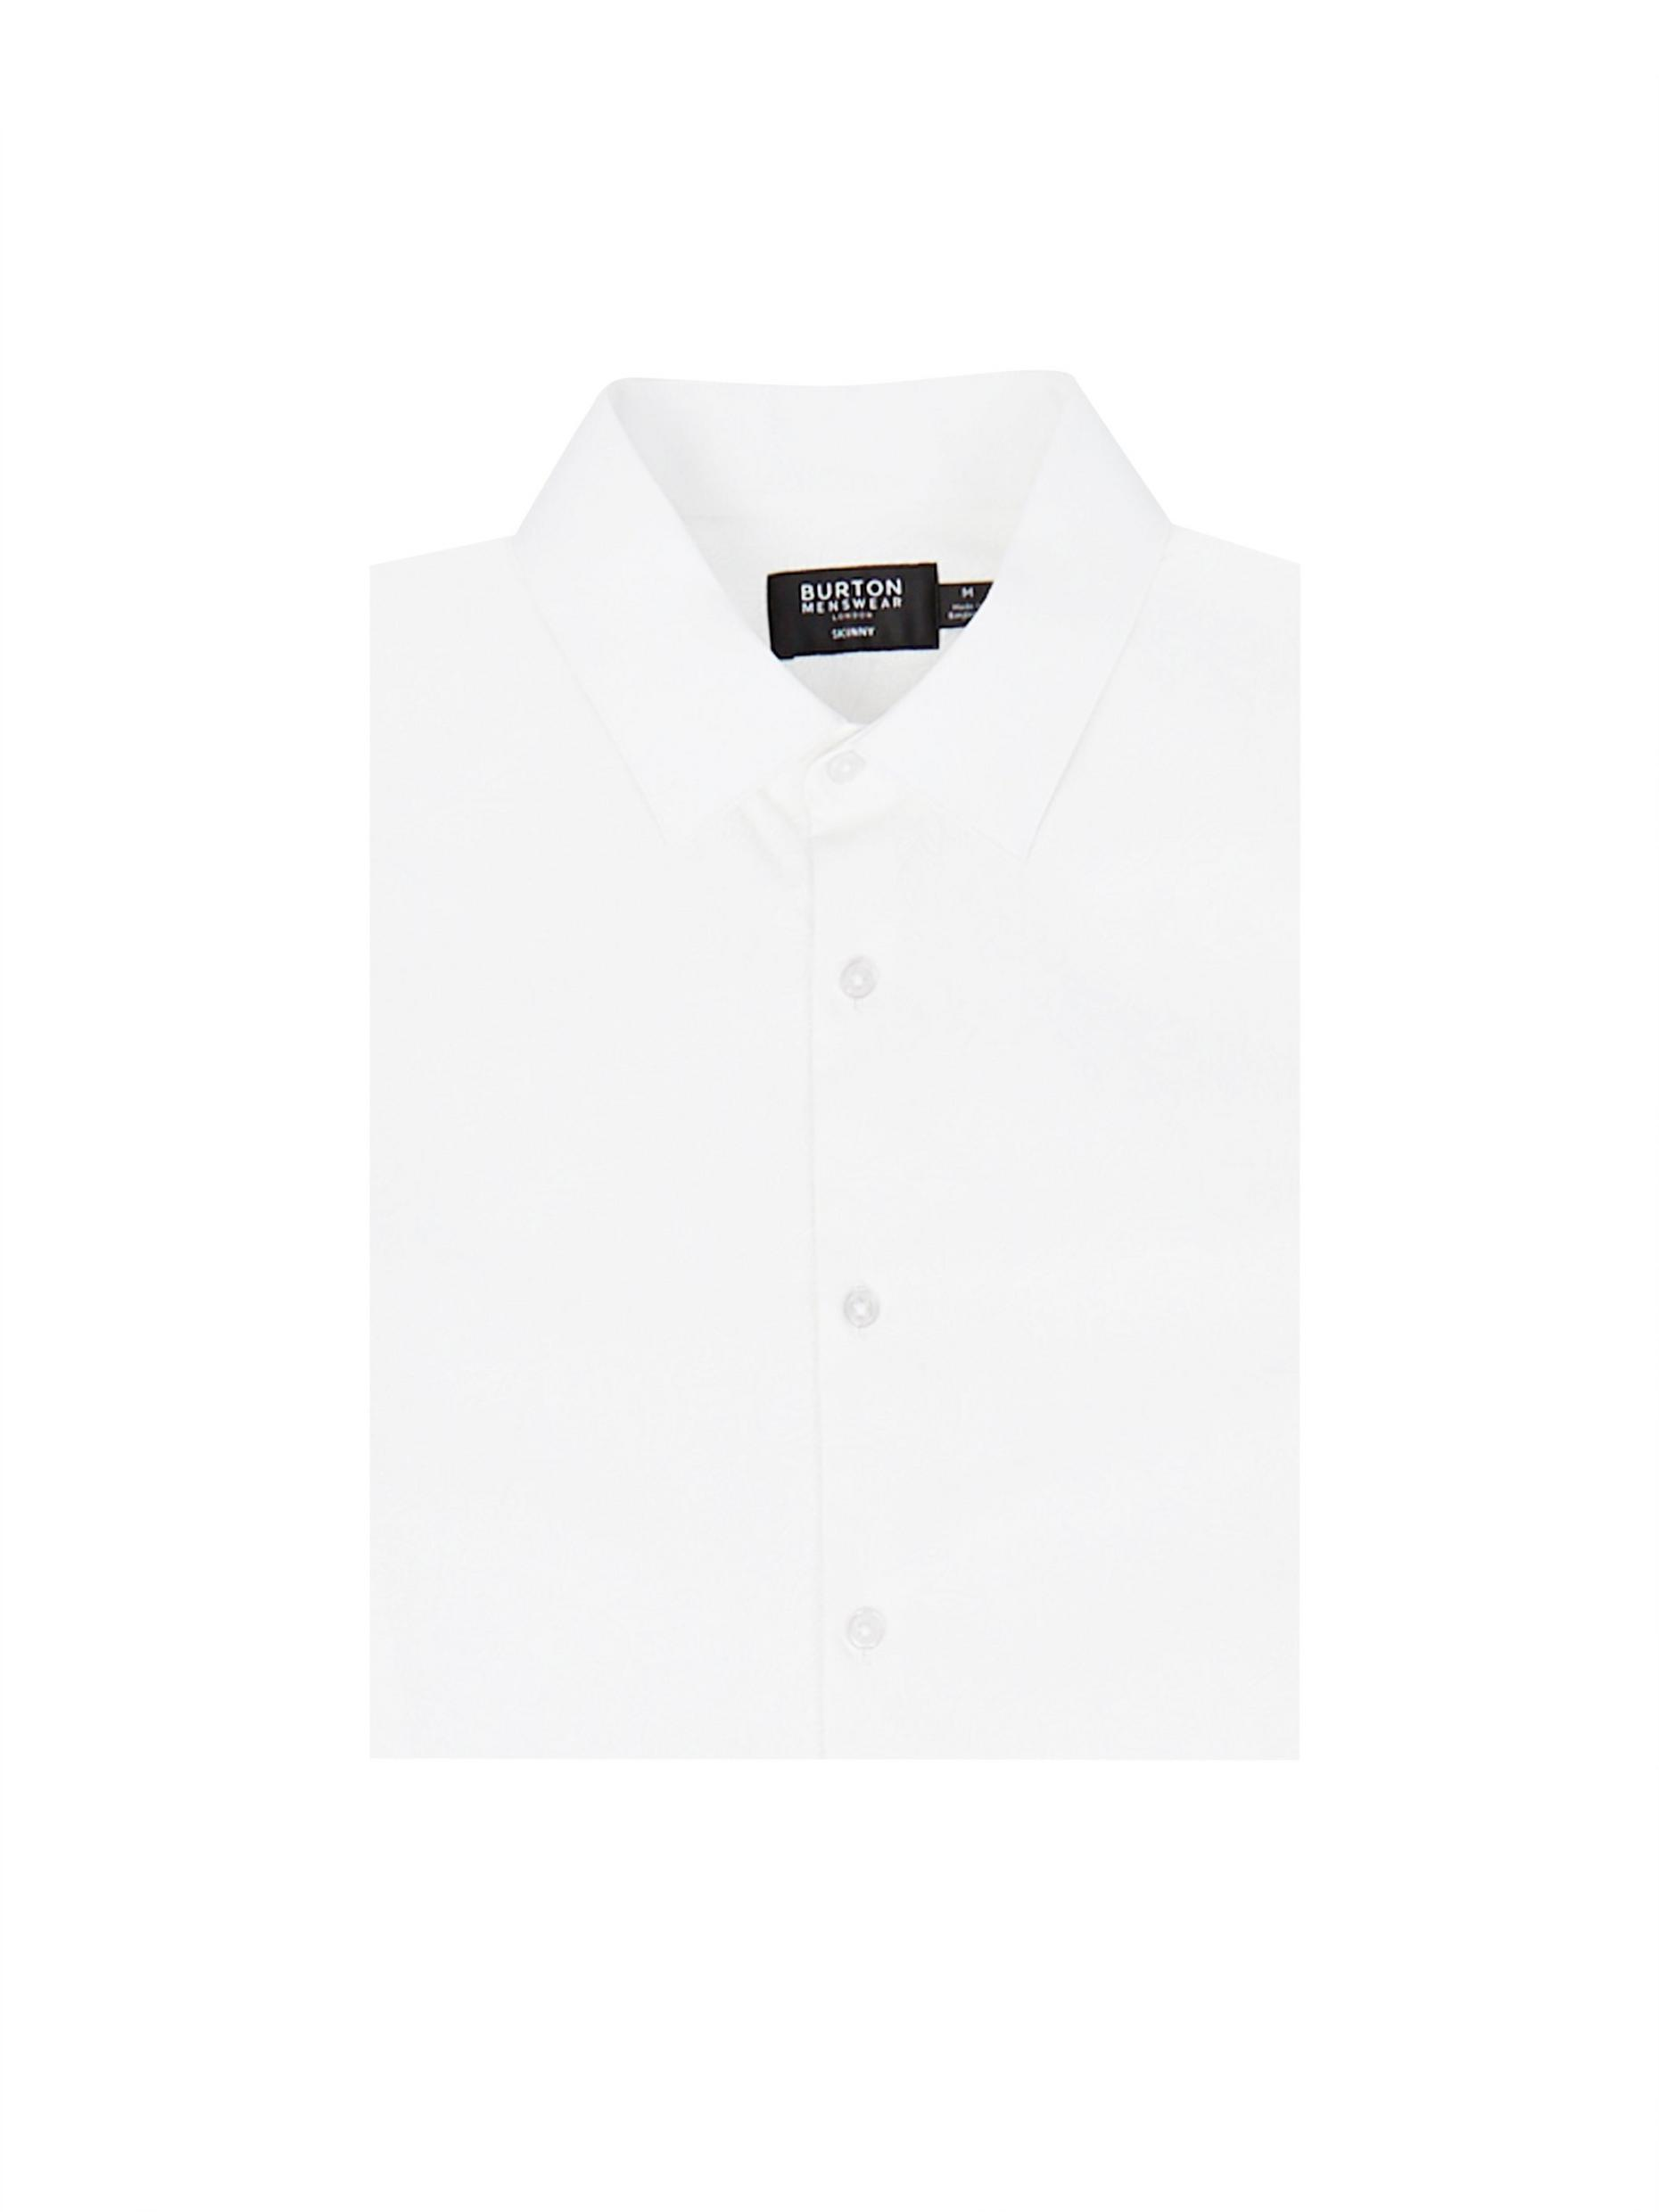 White On White Skinny Fit Shirt